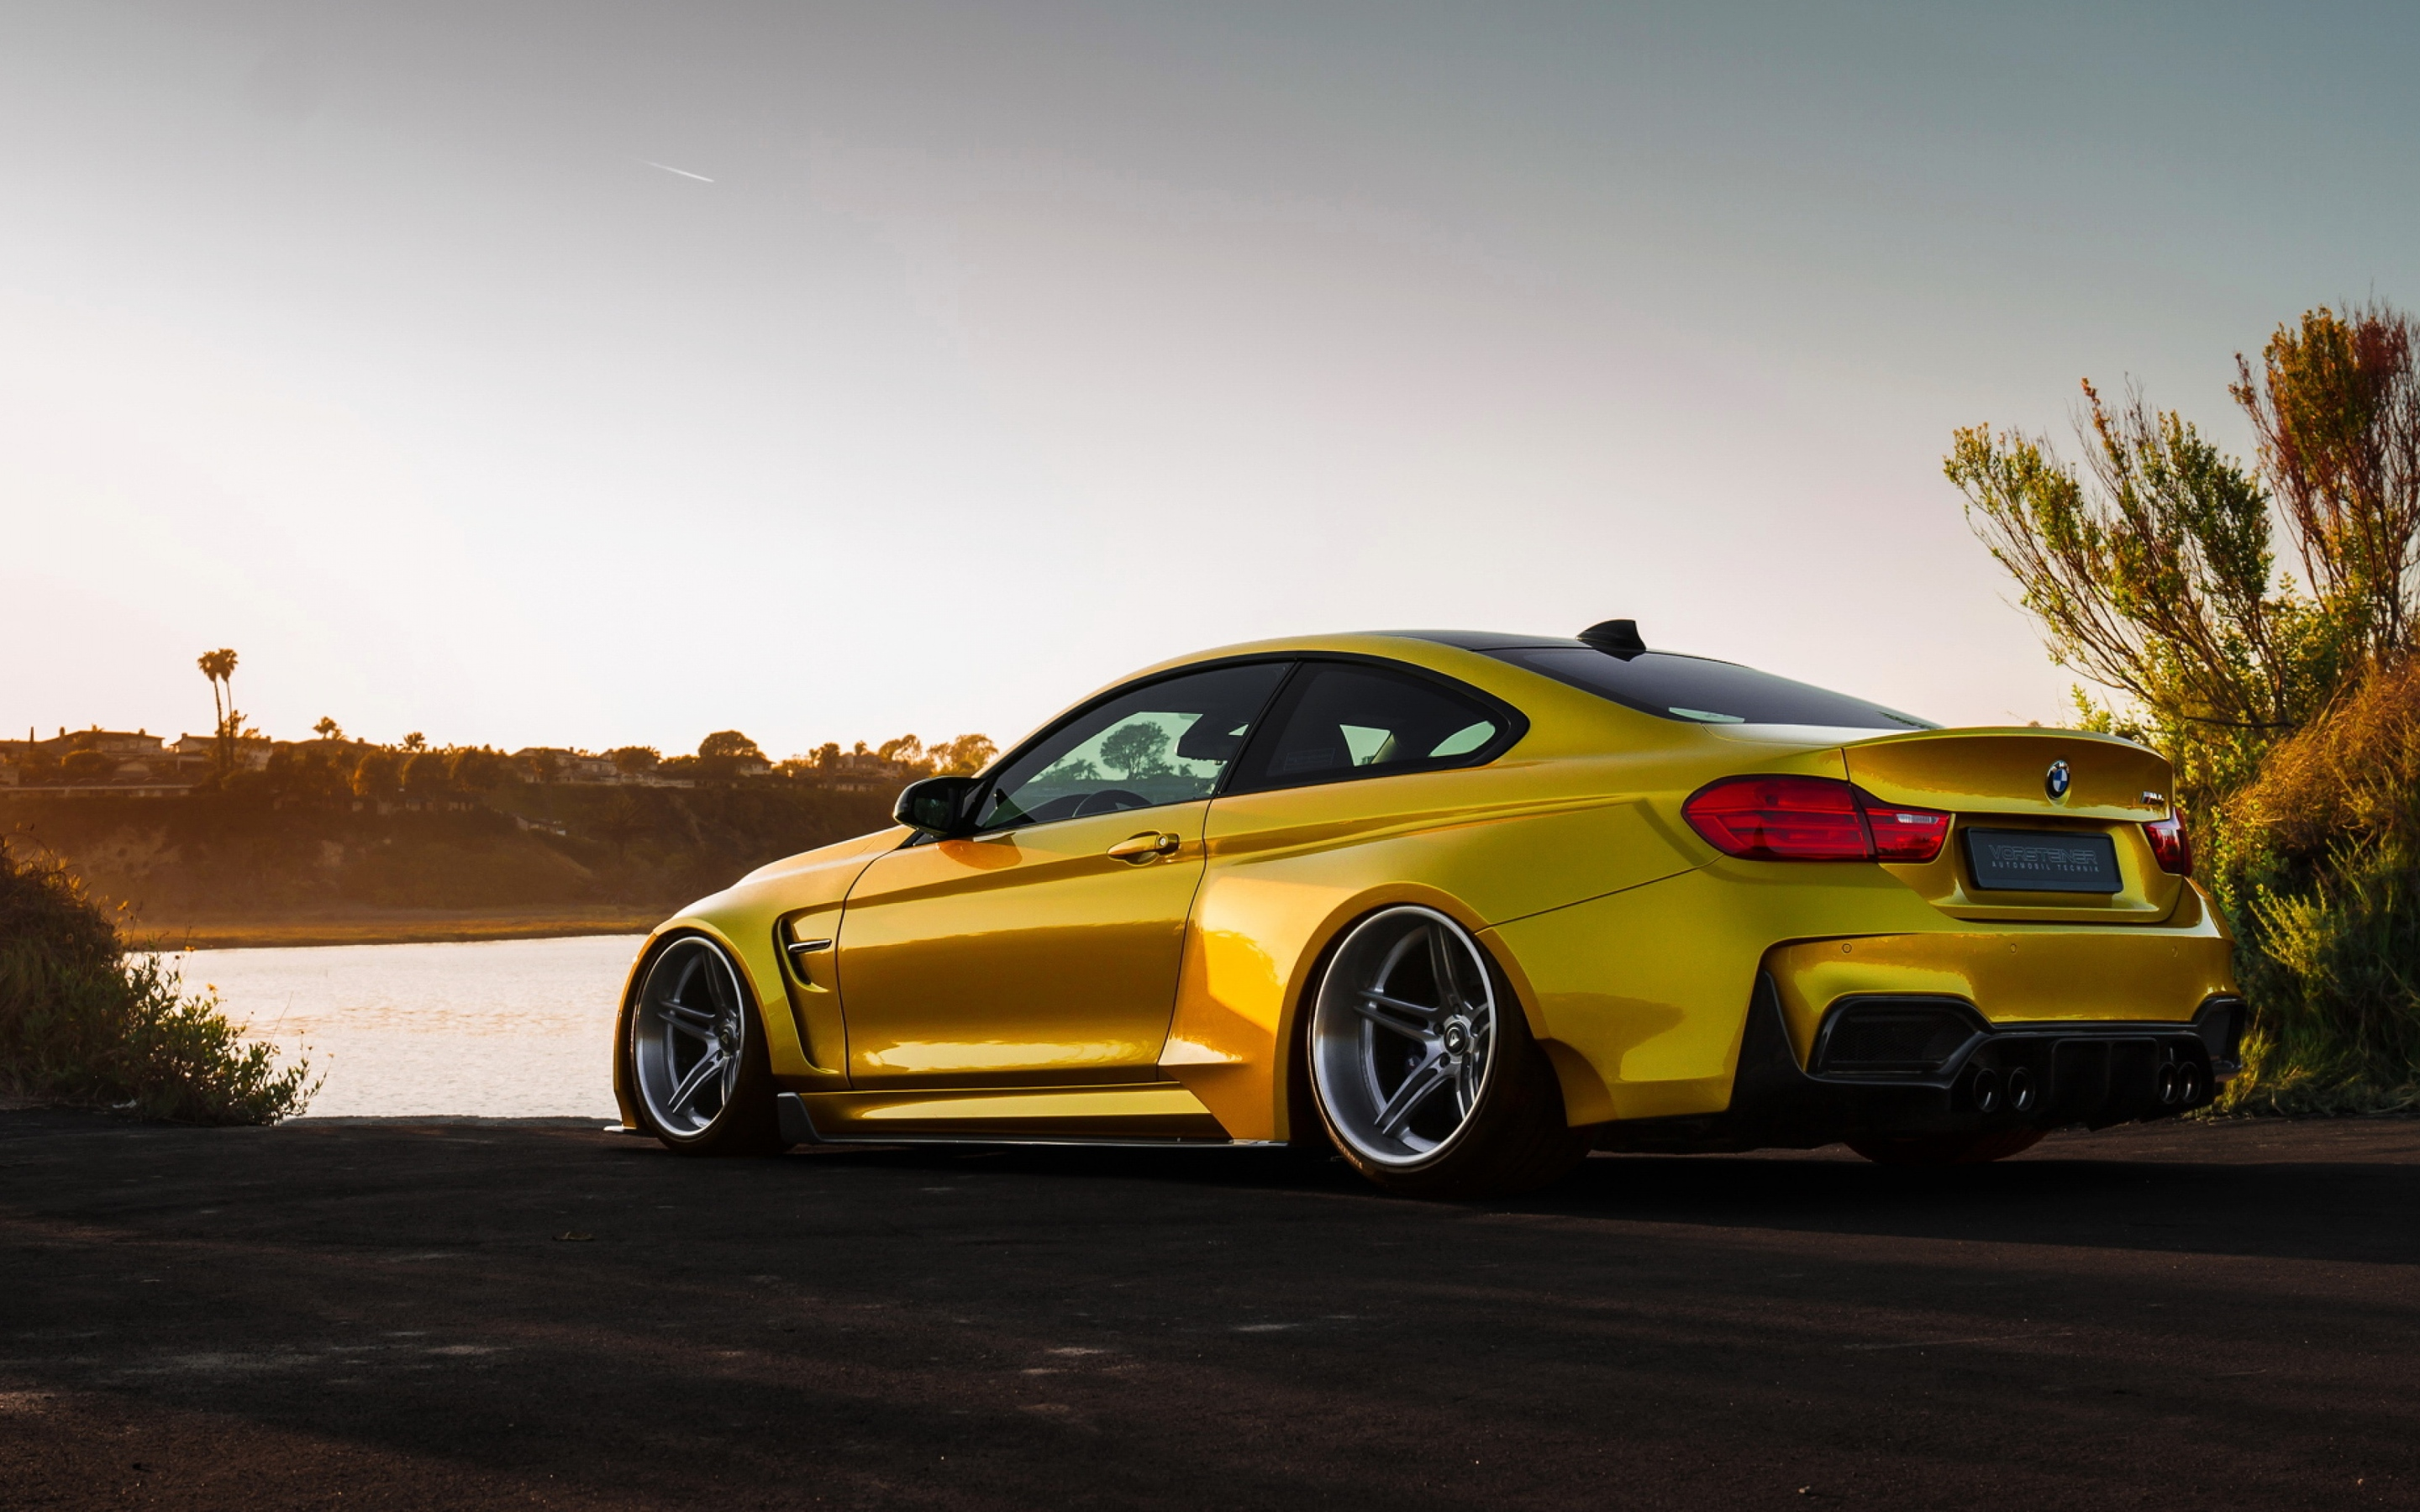 2880x1800 bmw m4 vorsteiner gold macbook pro retina hd 4k. Black Bedroom Furniture Sets. Home Design Ideas